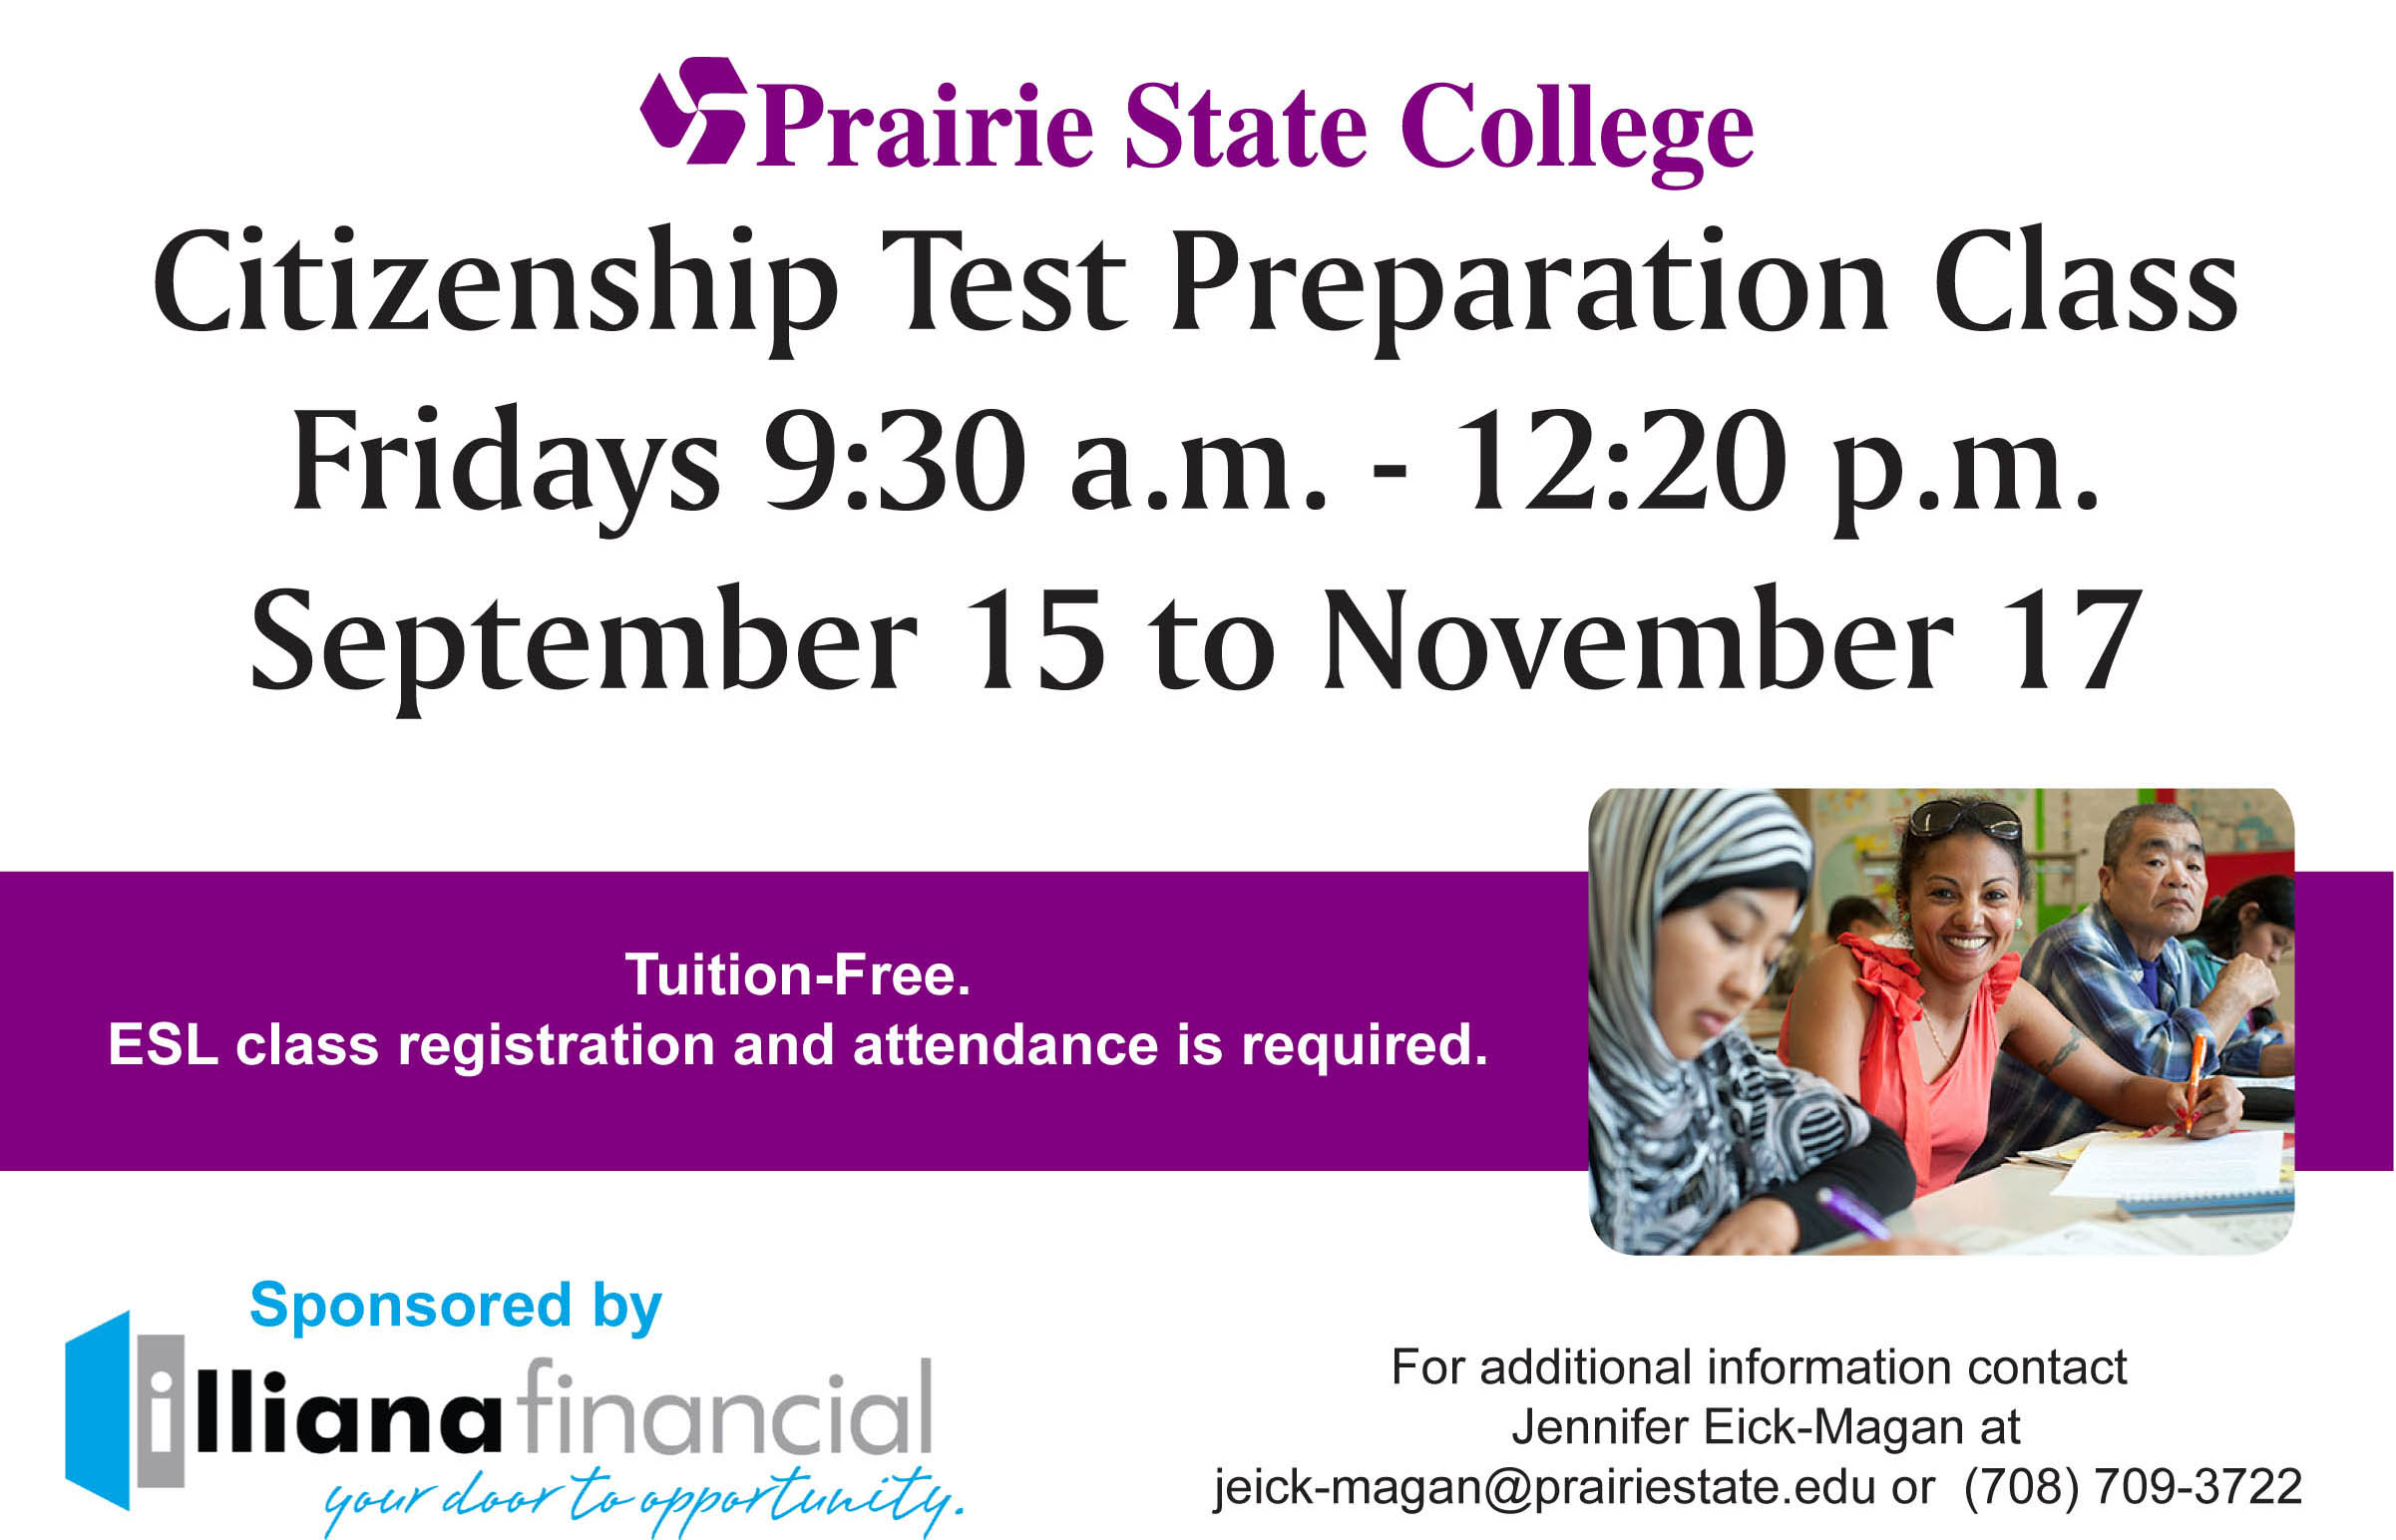 Prairie State College - Citizenship Test Preparation Class. Fridays at 9:30 a.m. to 12:20 p.m. September 15 to November 17